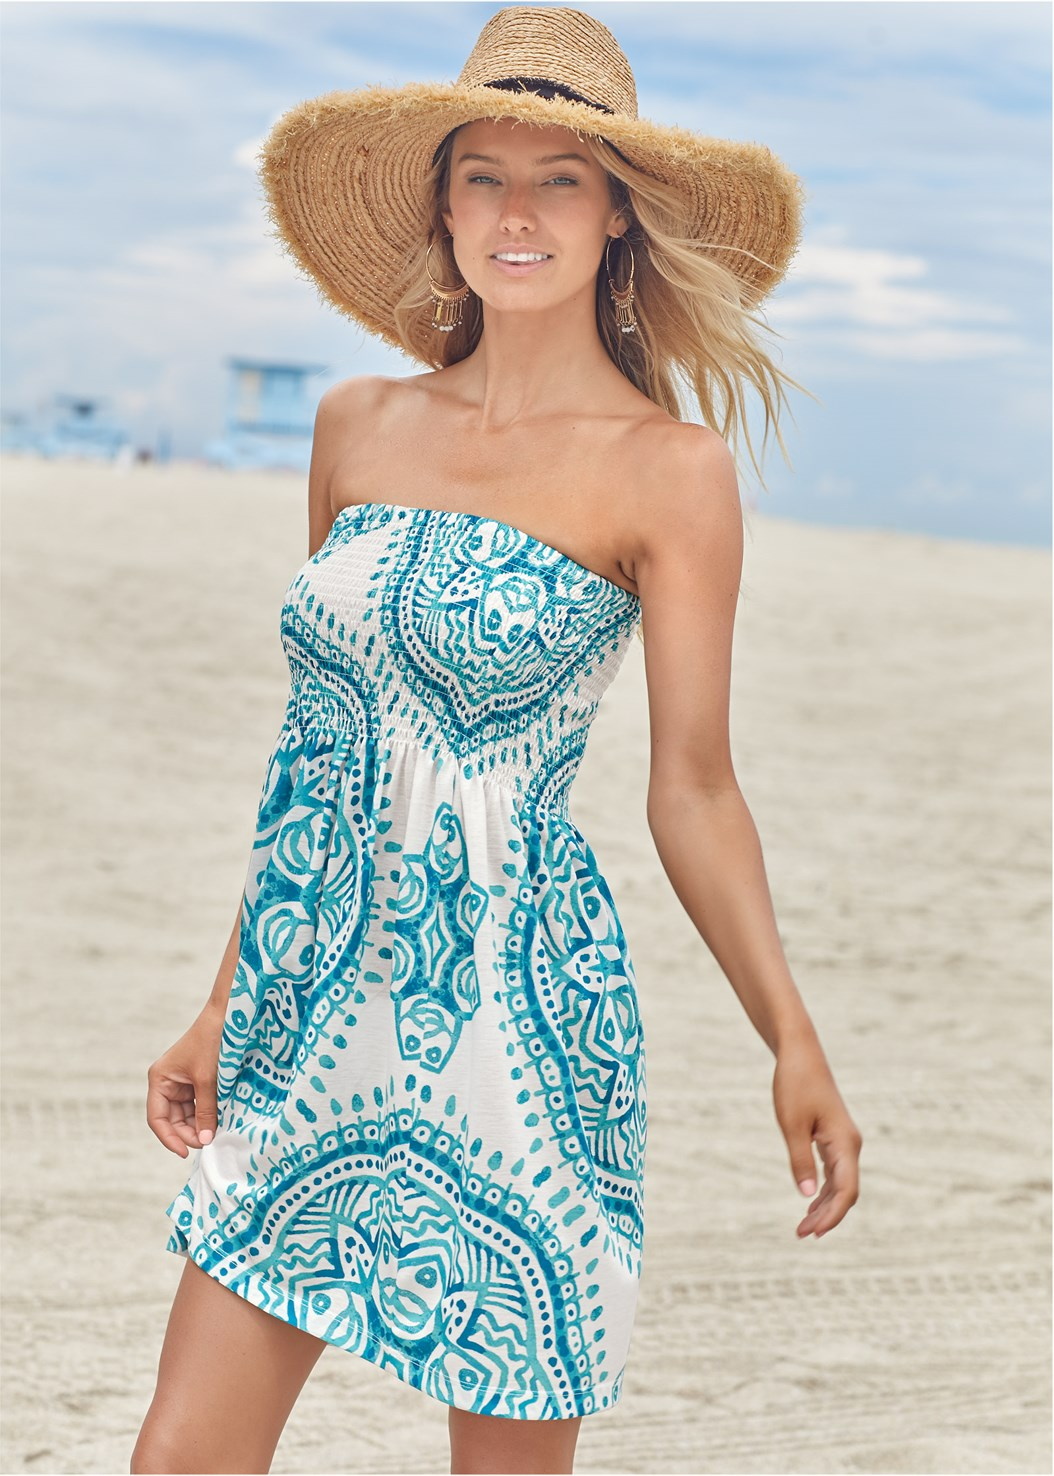 Convertible Dress/Skirt,Marilyn Underwire Push Up Halter Top